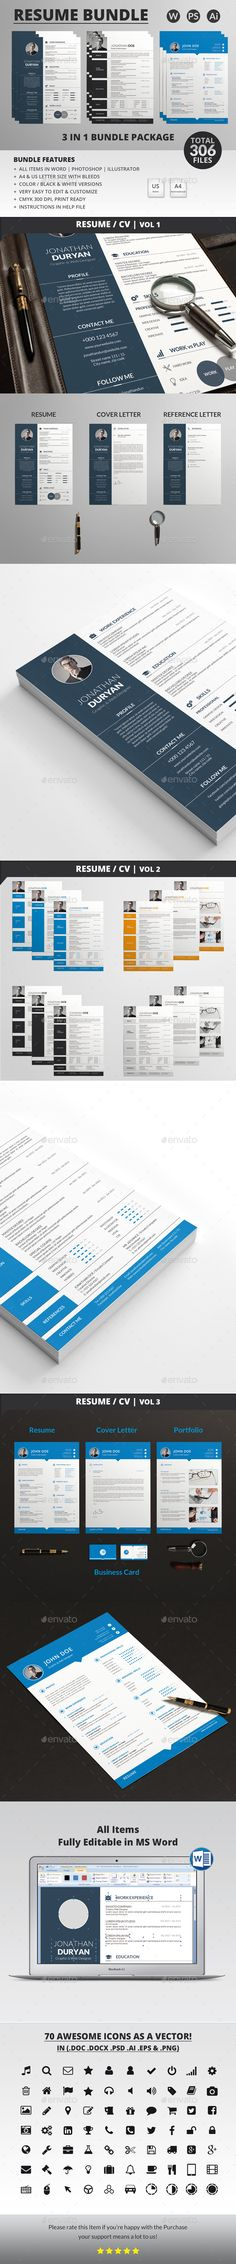 Resume Template PSD Download here http\/\/graphicrivernet\/item - net resume